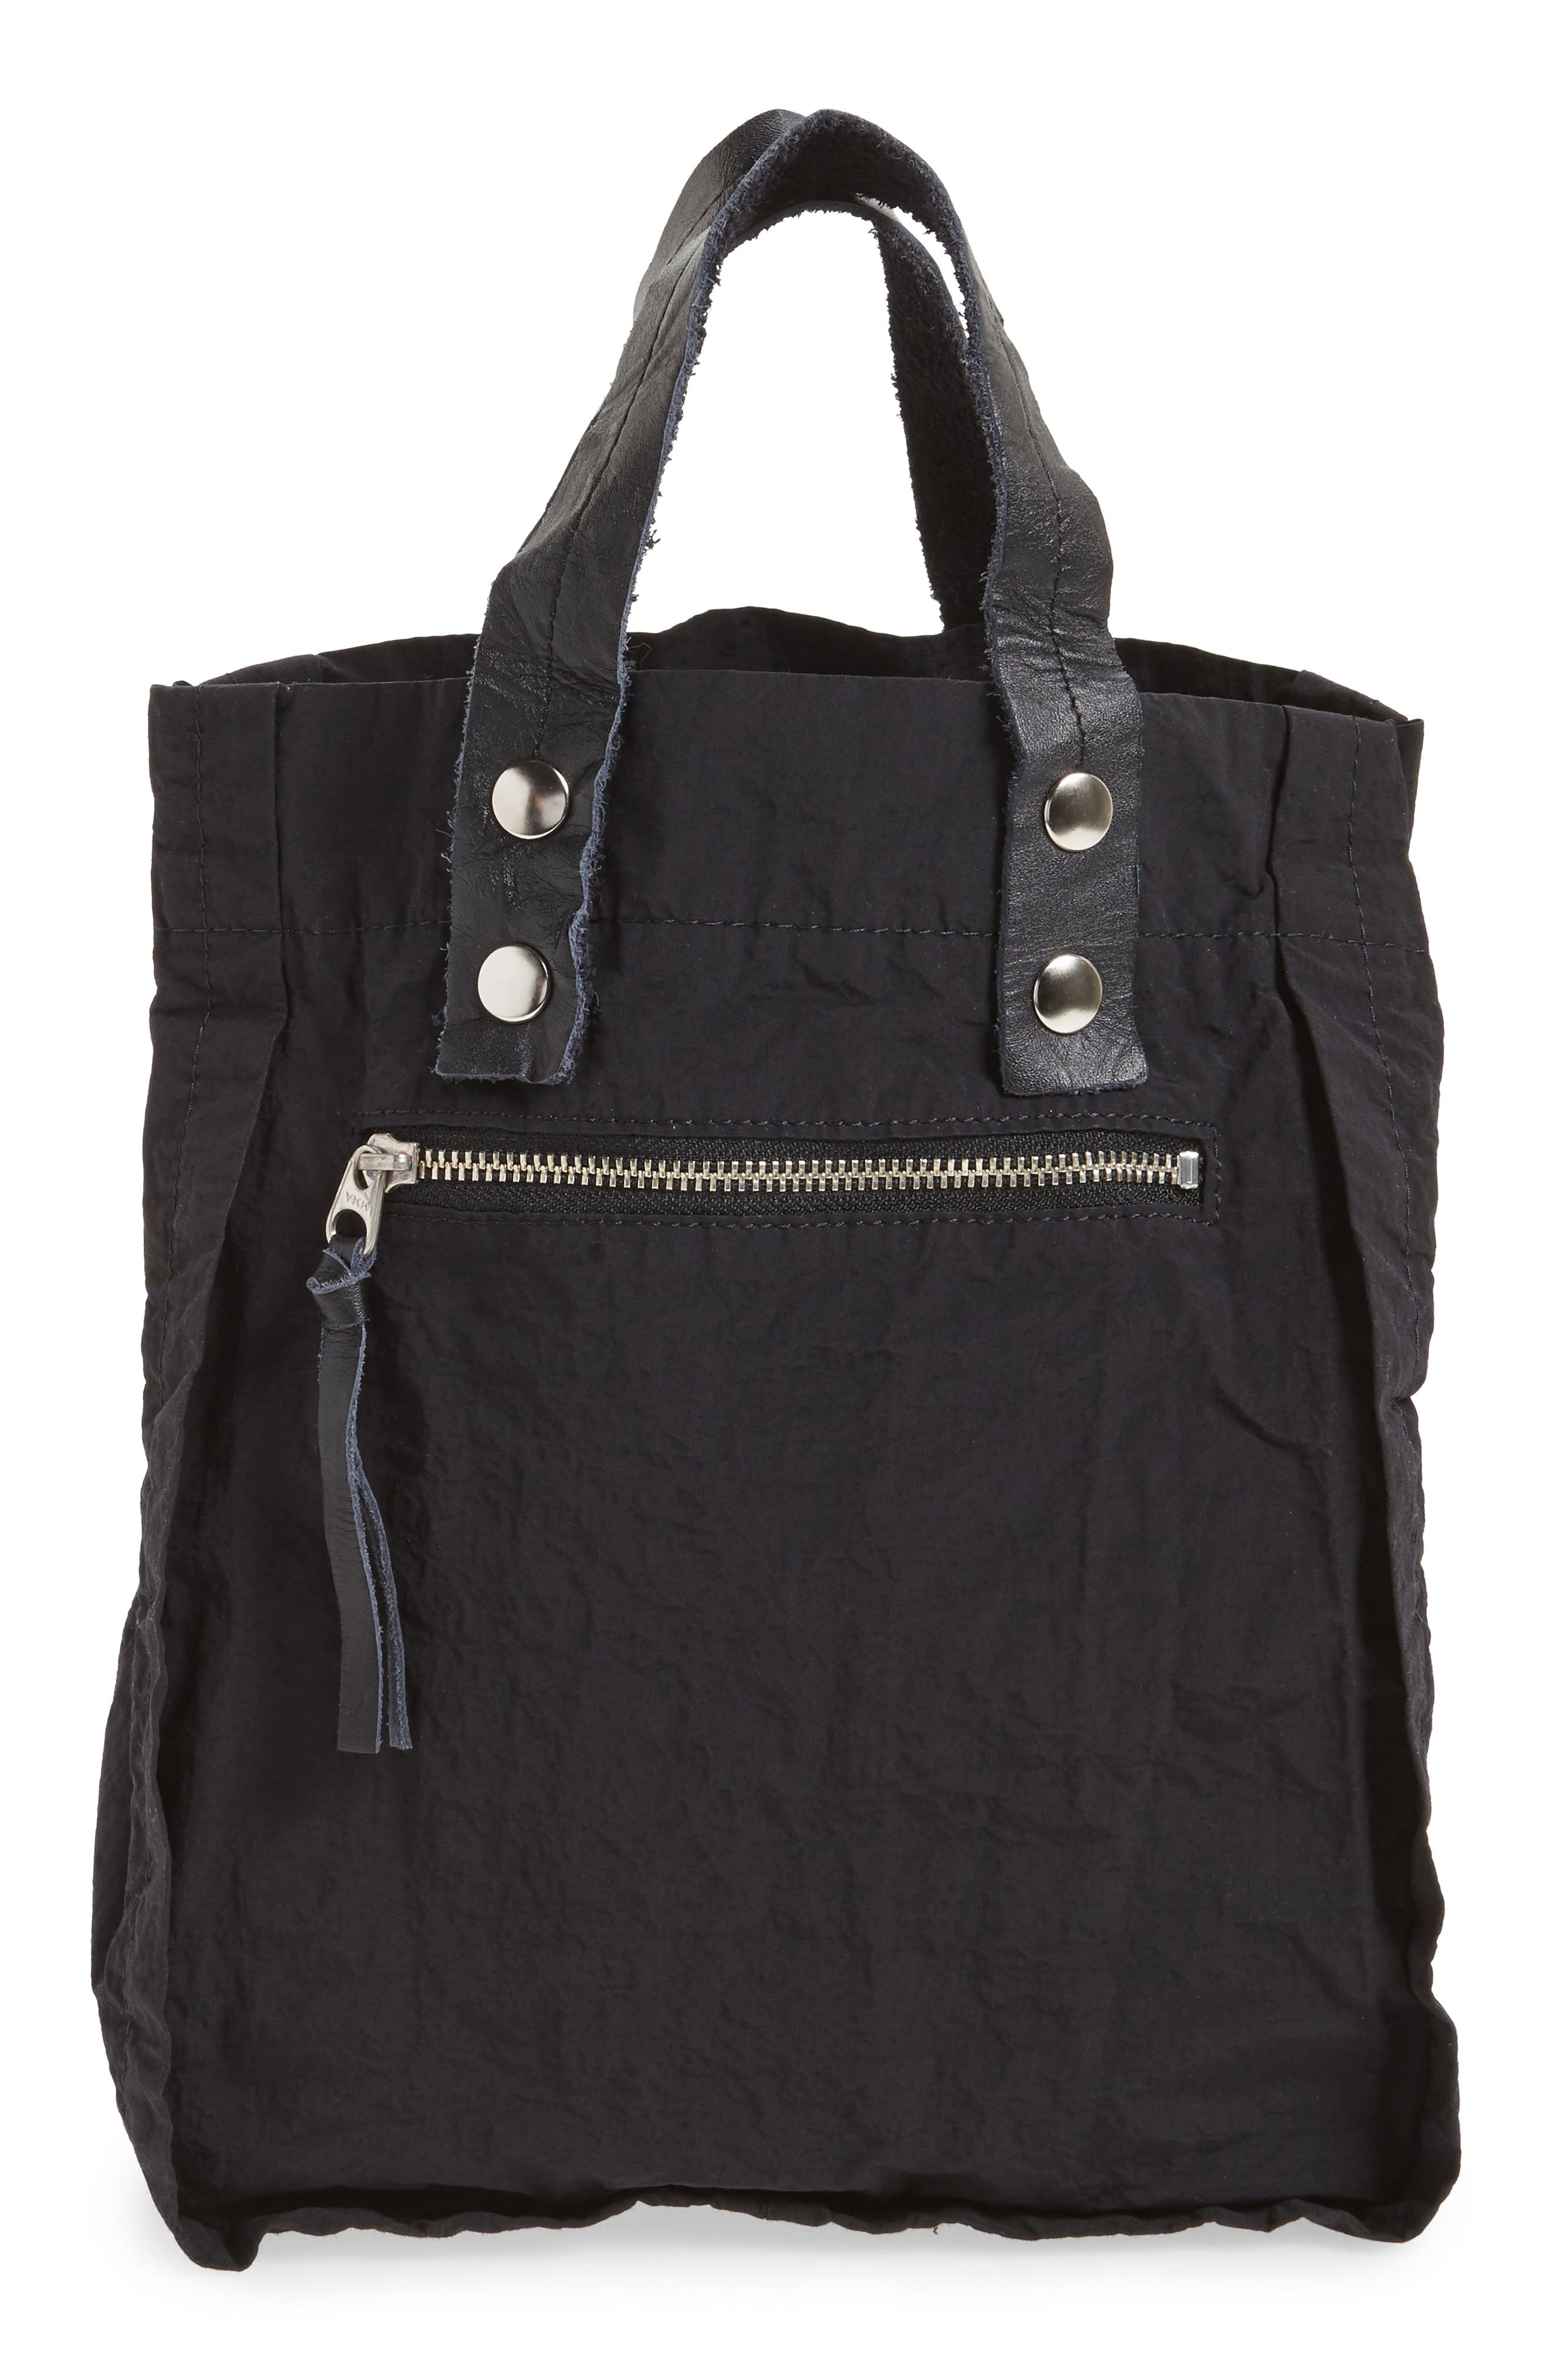 Alternate Image 1 Selected - Tricot Comme des Garçons Small Nylon Tote